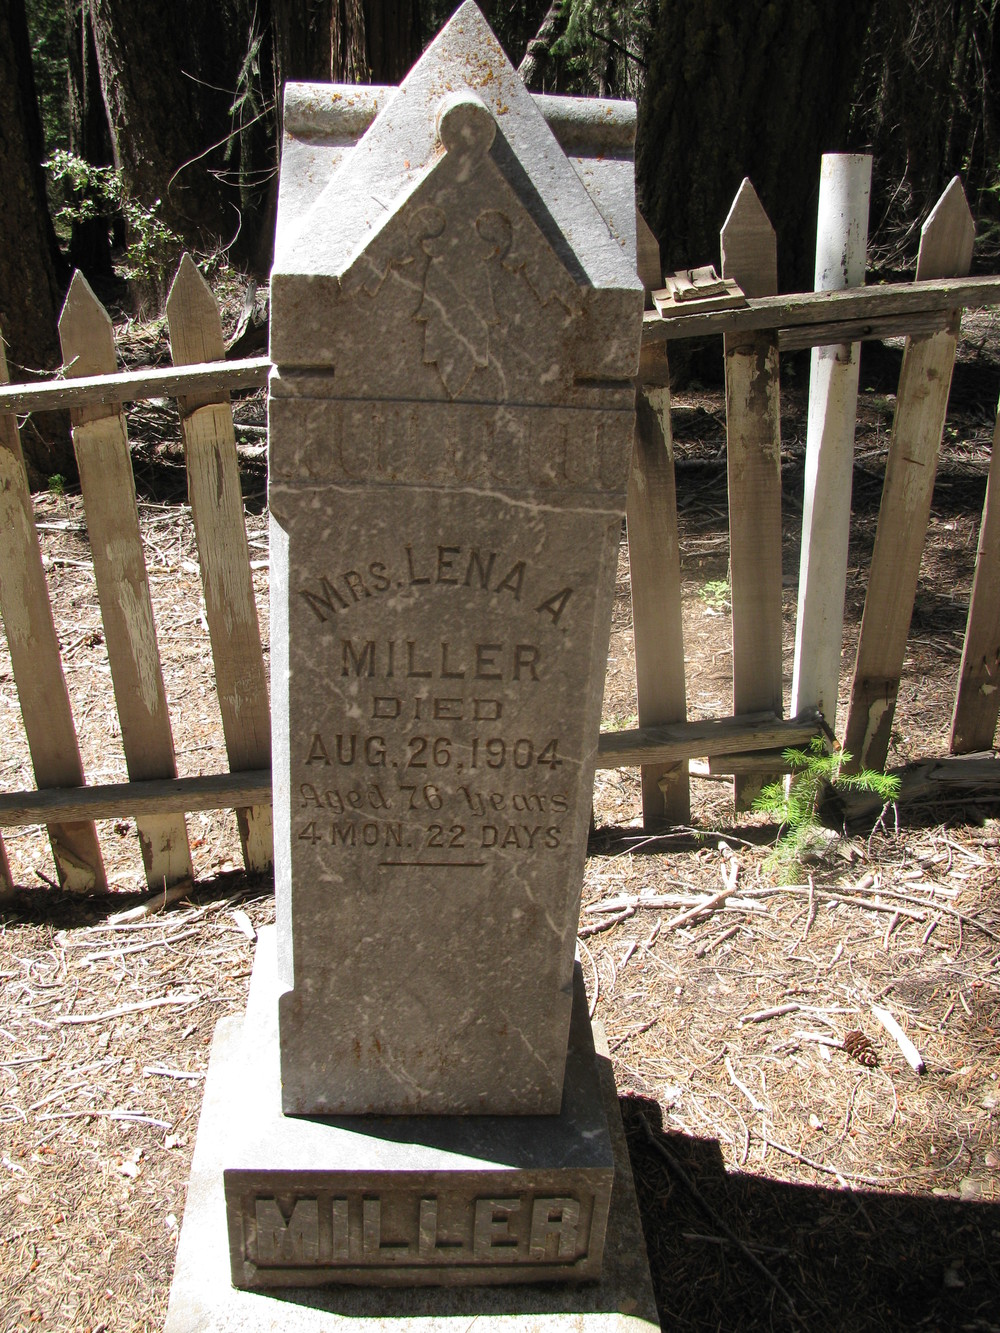 Hike up to the Miller Cemetery